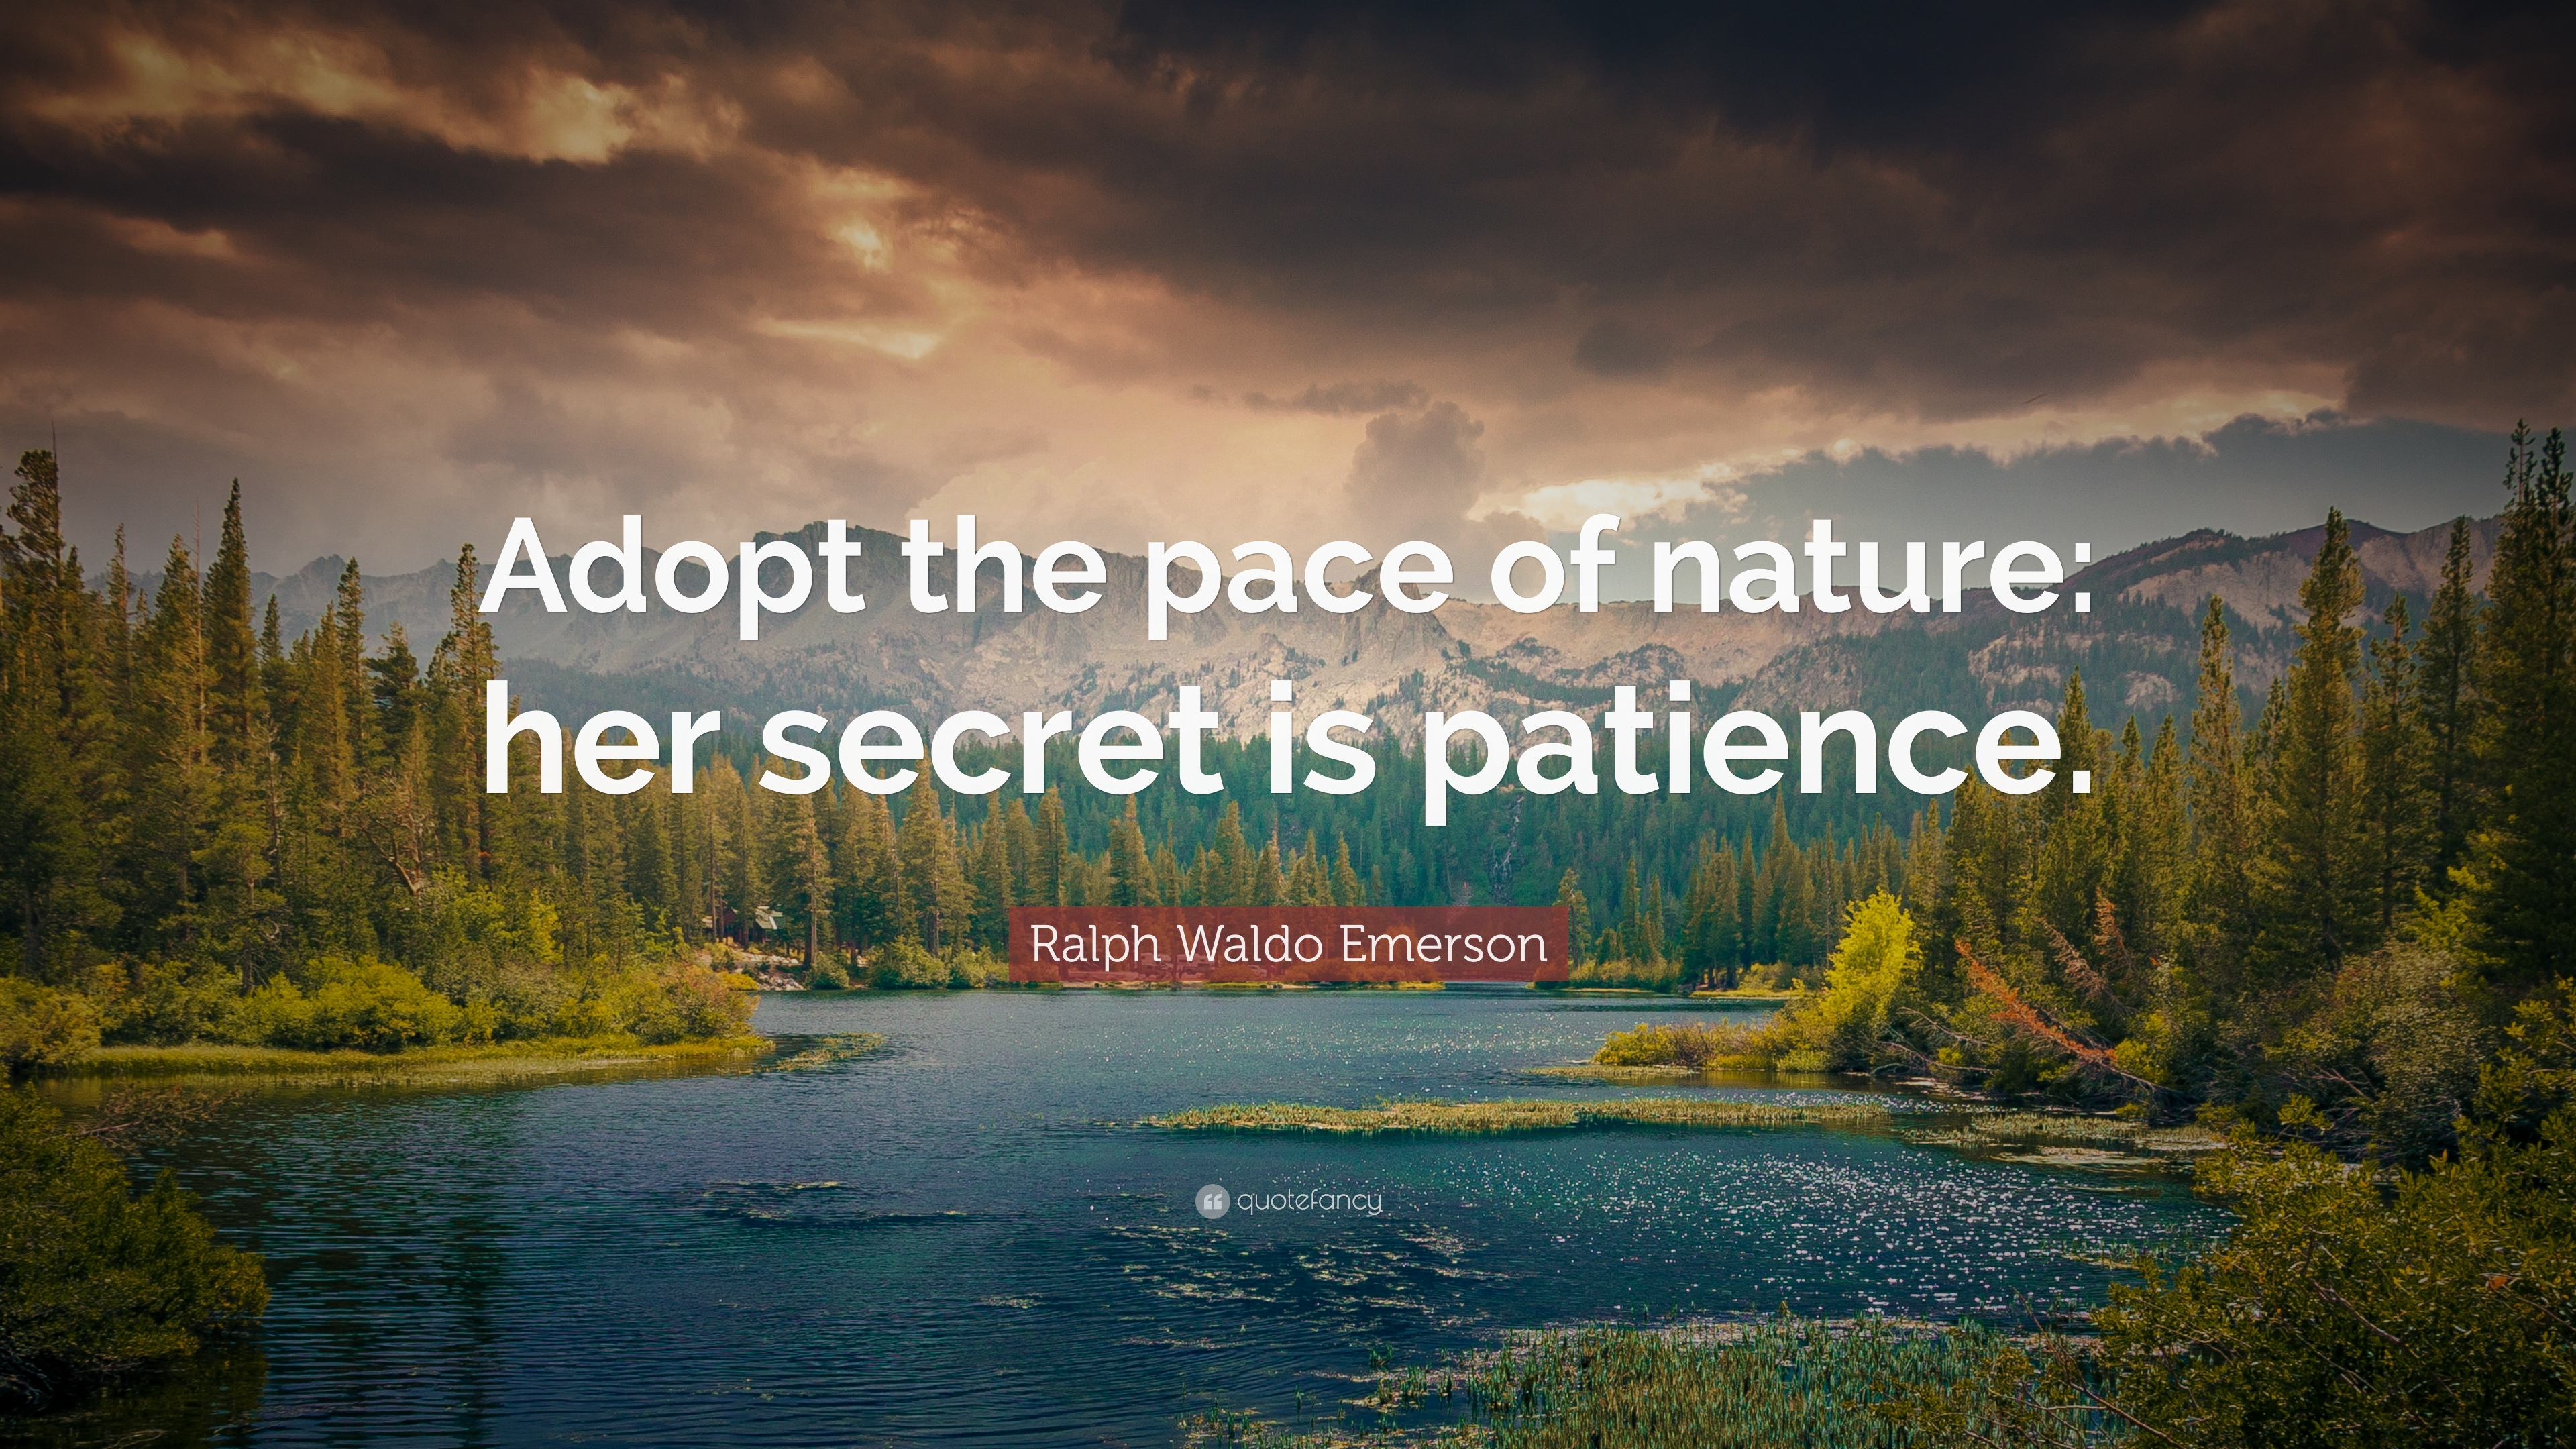 Civil Engineering Quotes Wallpapers Ralph Waldo Emerson Quote Adopt The Pace Of Nature Her